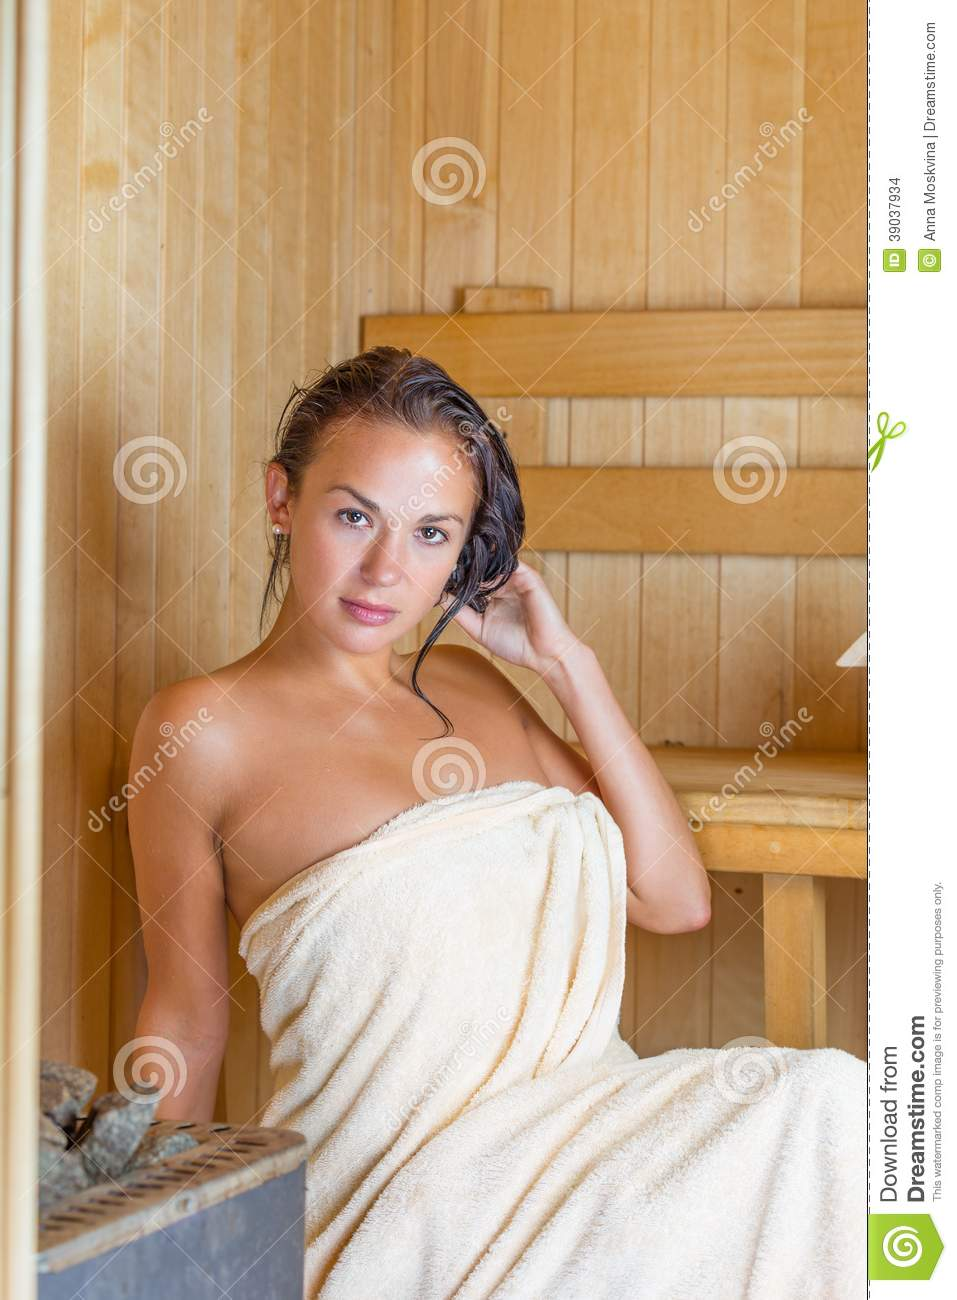 junge h bsche frau in der sauna stockfoto bild 39037934. Black Bedroom Furniture Sets. Home Design Ideas